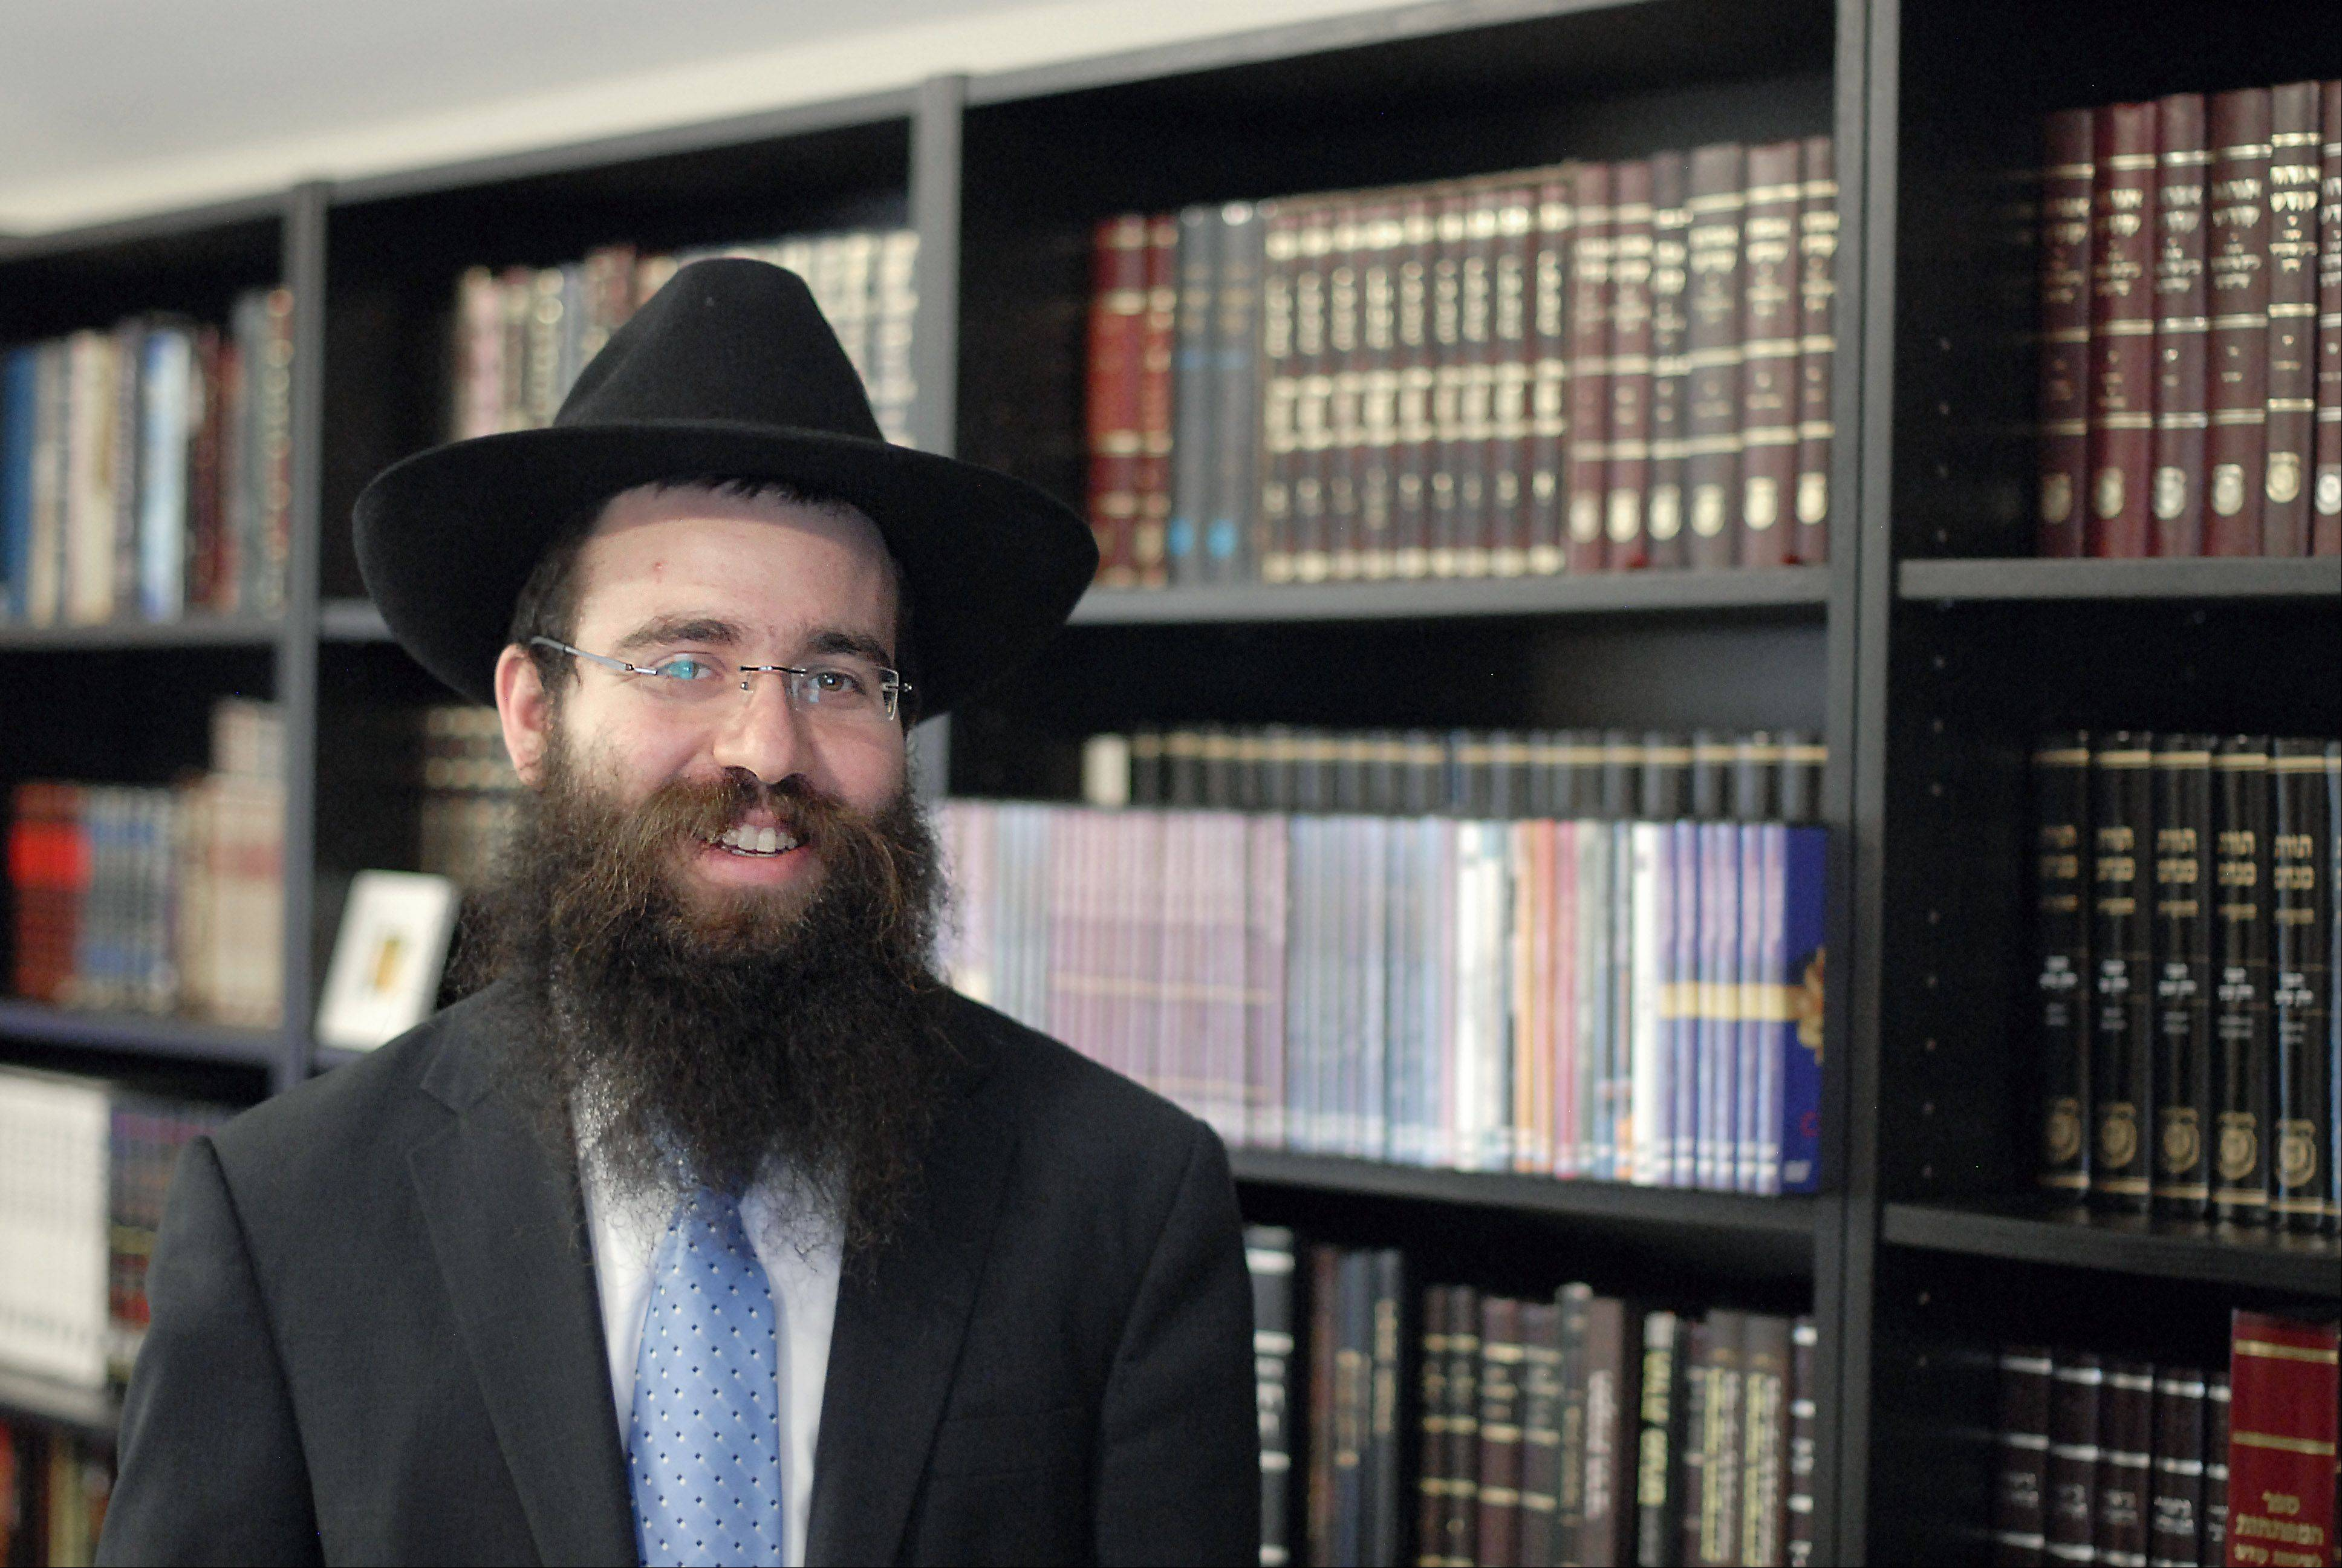 Rabbi Mendel Shemtov has been running the Chabad of Elgin & Hoffman Estates since the summer.